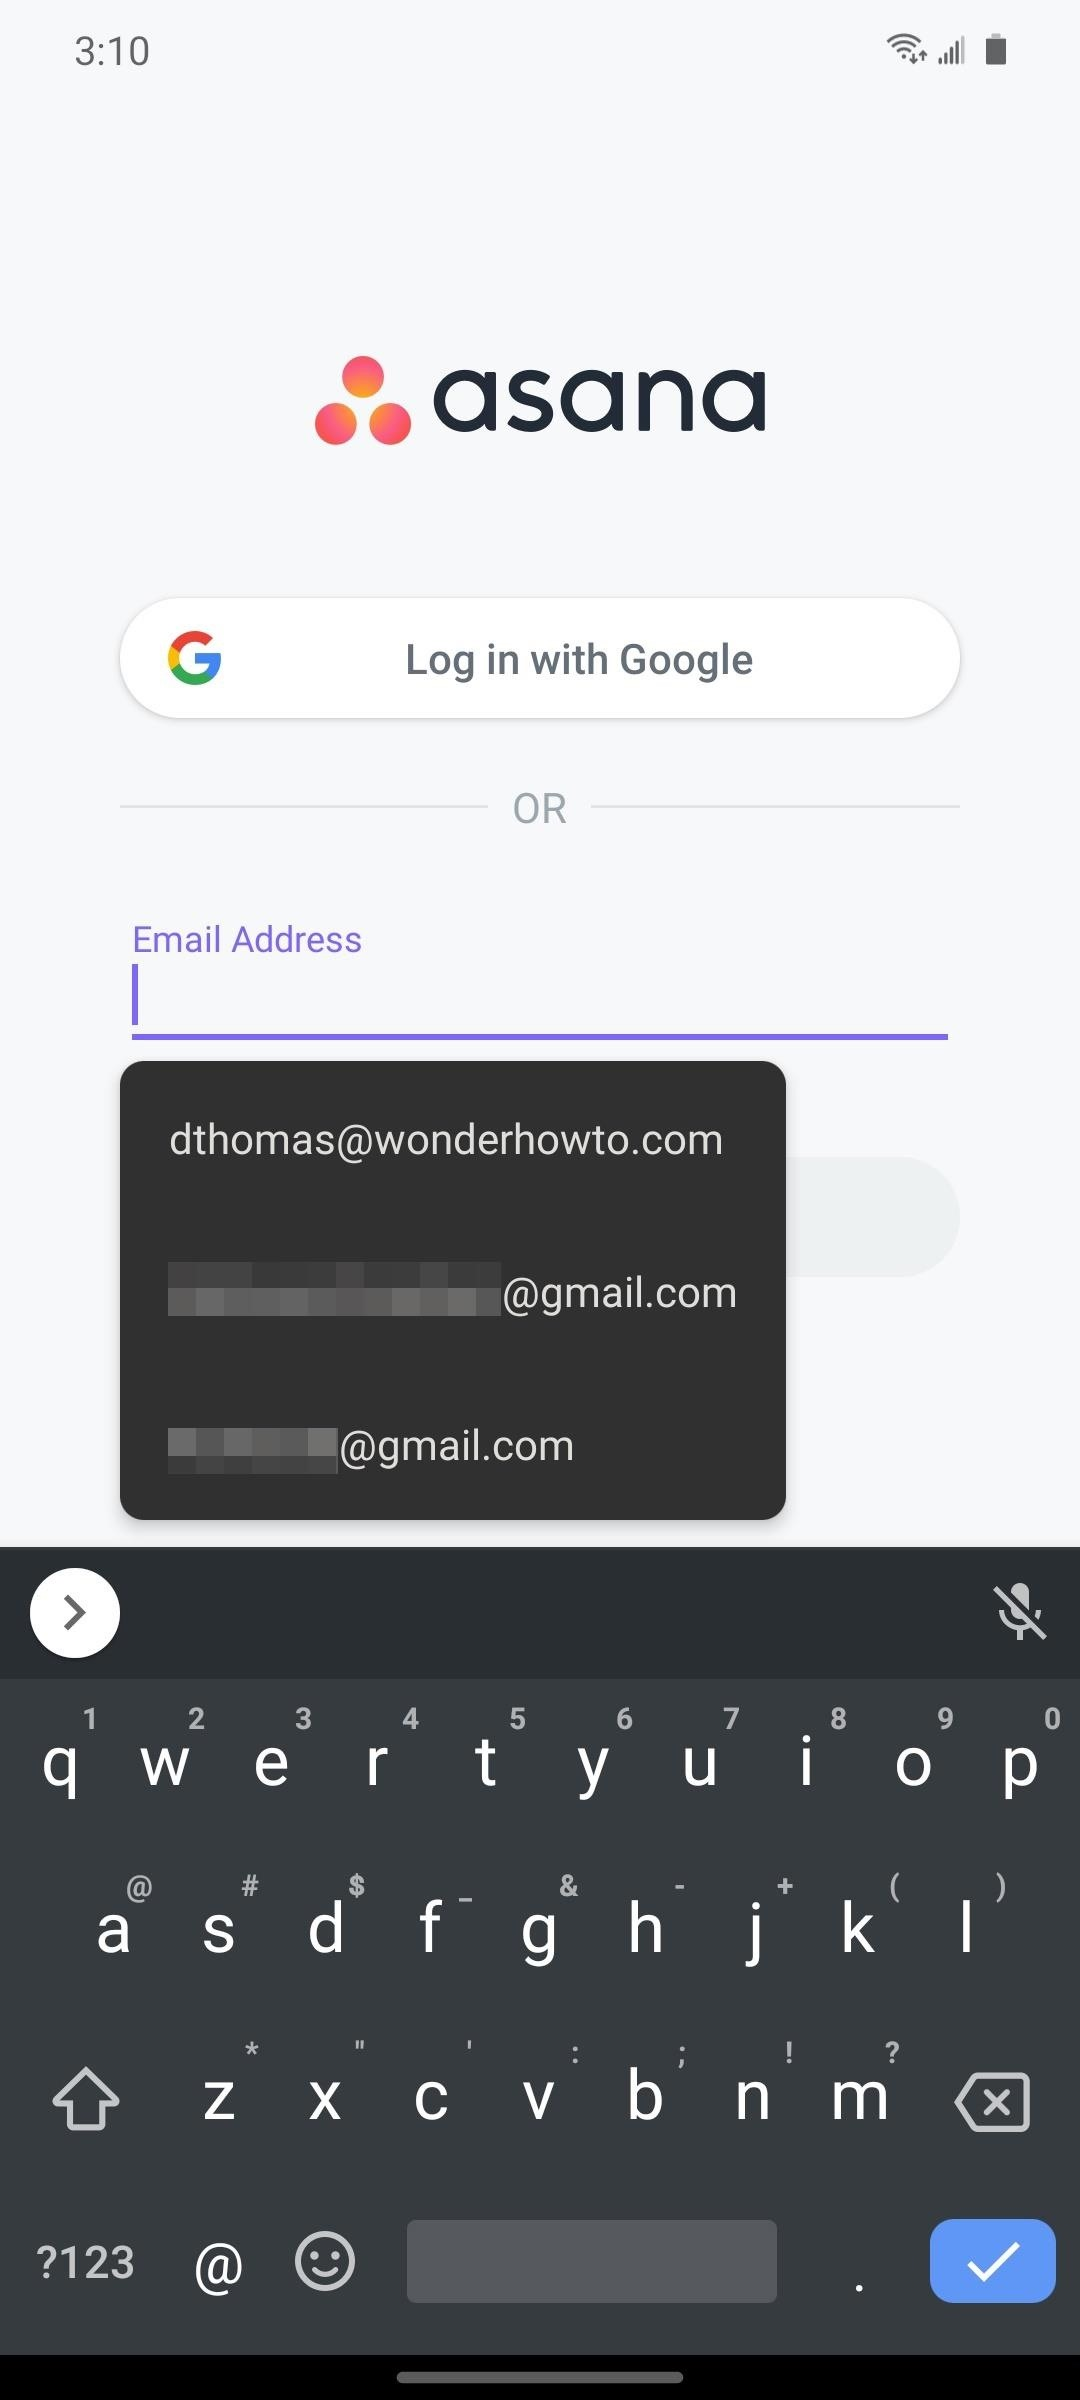 How to Use Your Saved Chrome Passwords to Log into Apps on Your Galaxy